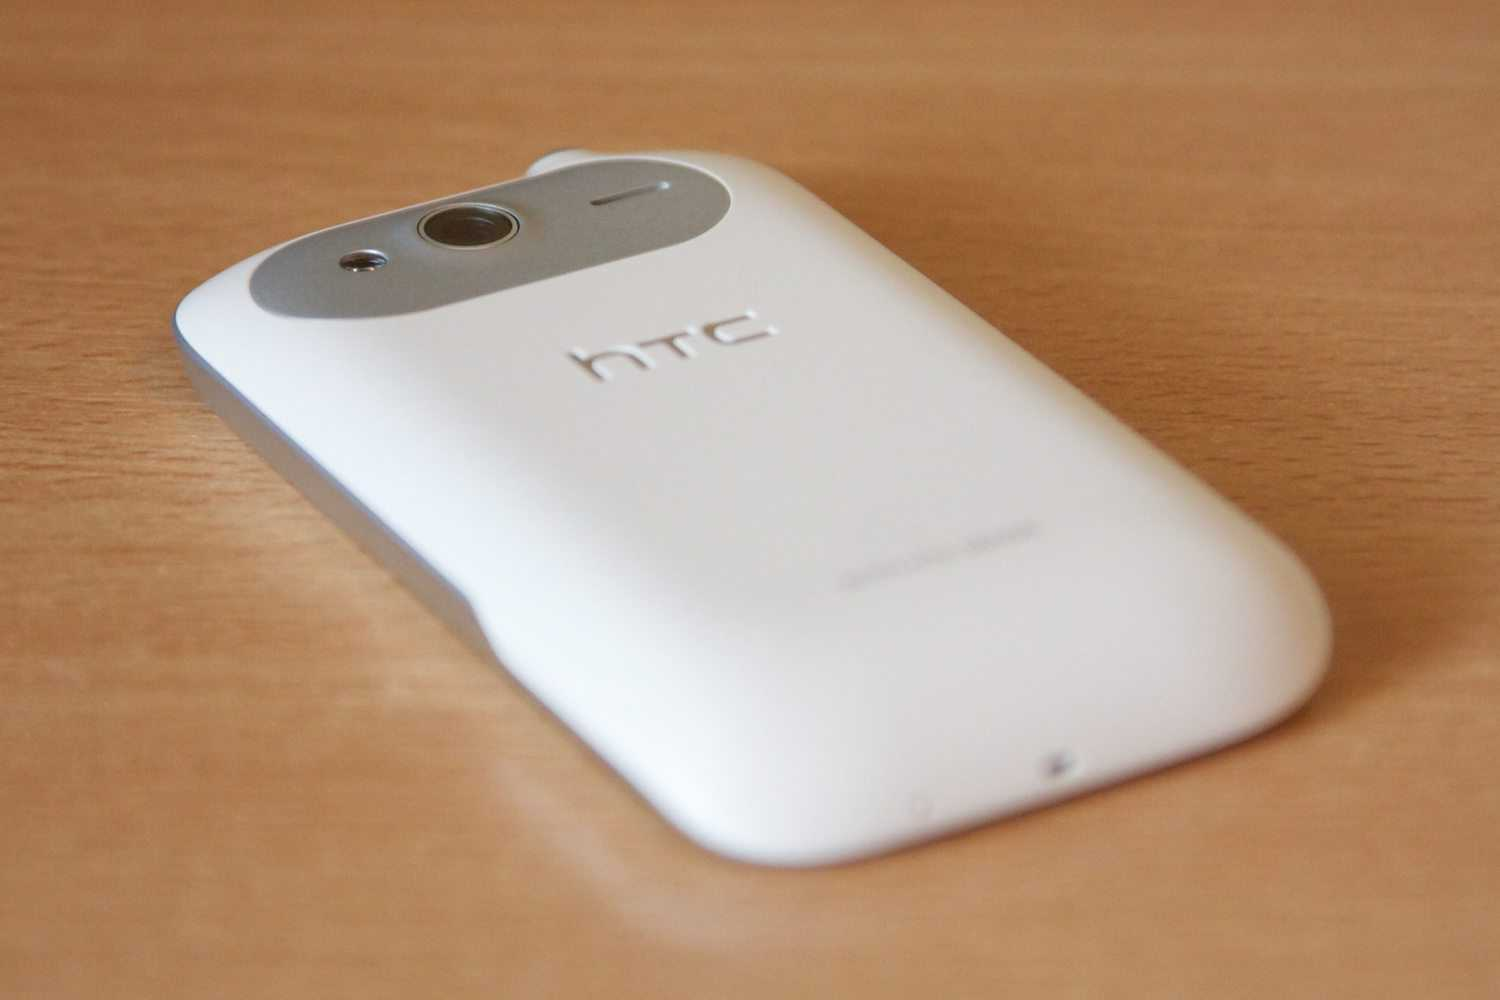 How To Root Htc Wildfire S And Install CWM Recovery